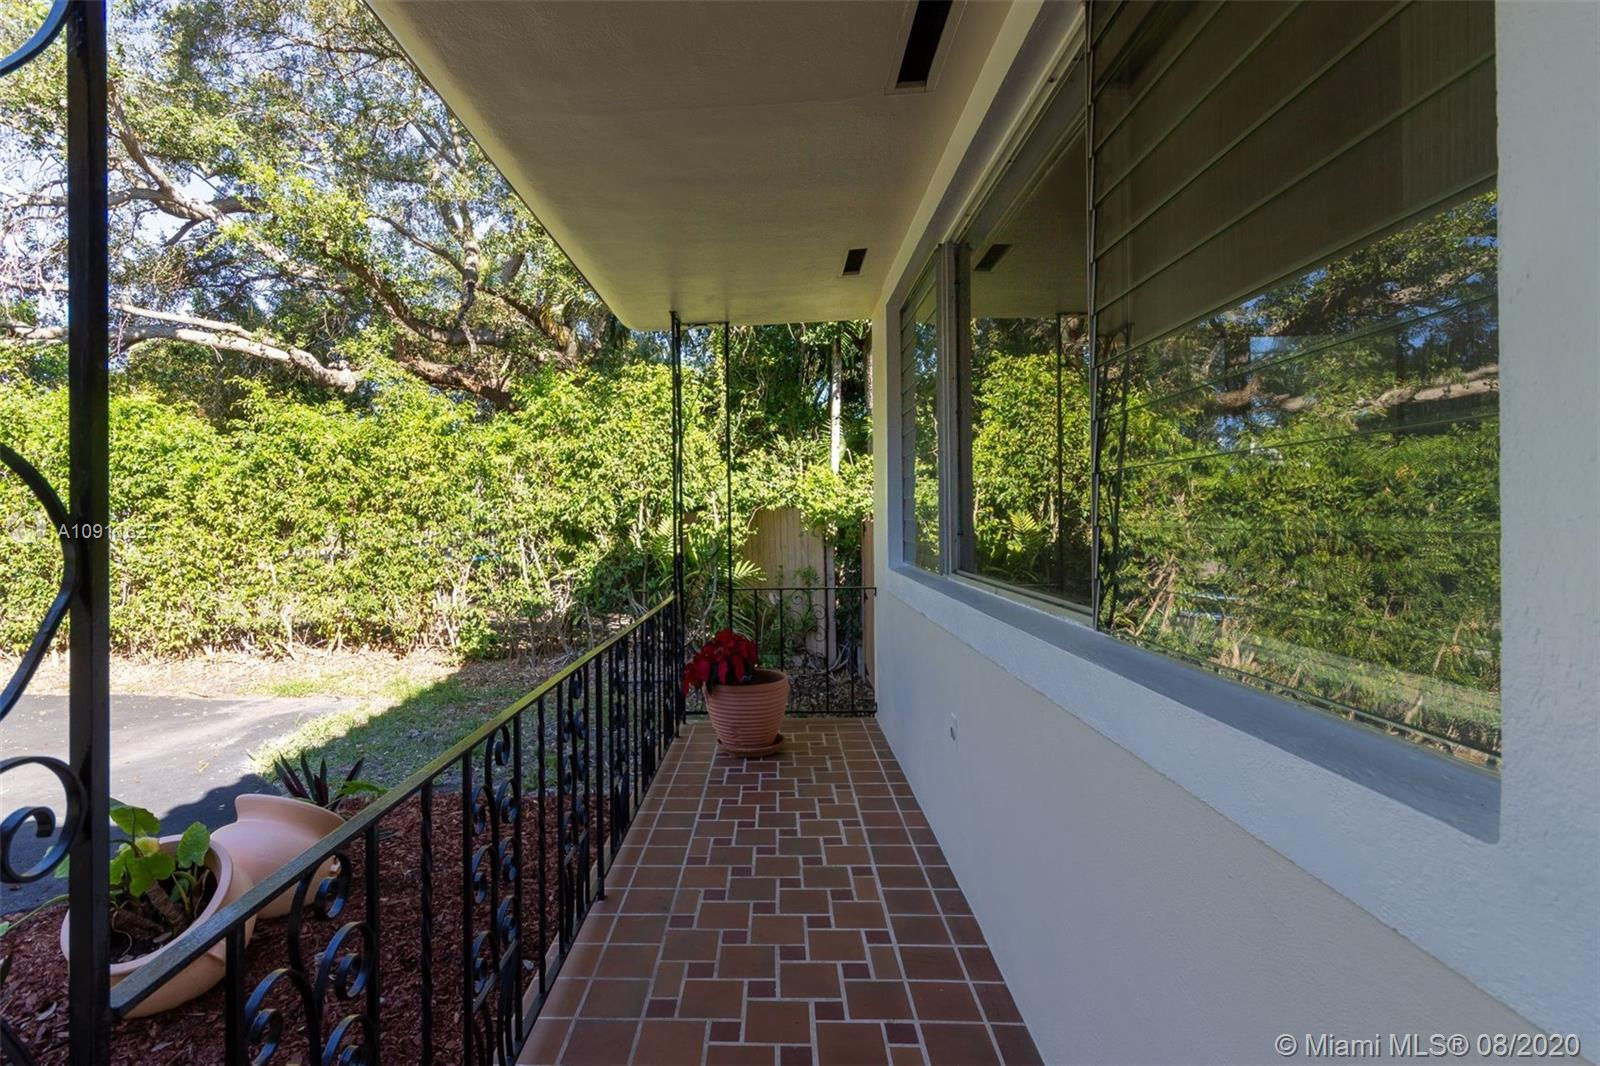 9351 NE 12th Ave, Miami Shores, Florida 33138, 5 Bedrooms Bedrooms, ,4 BathroomsBathrooms,Residential,For Sale,9351 NE 12th Ave,A10911627